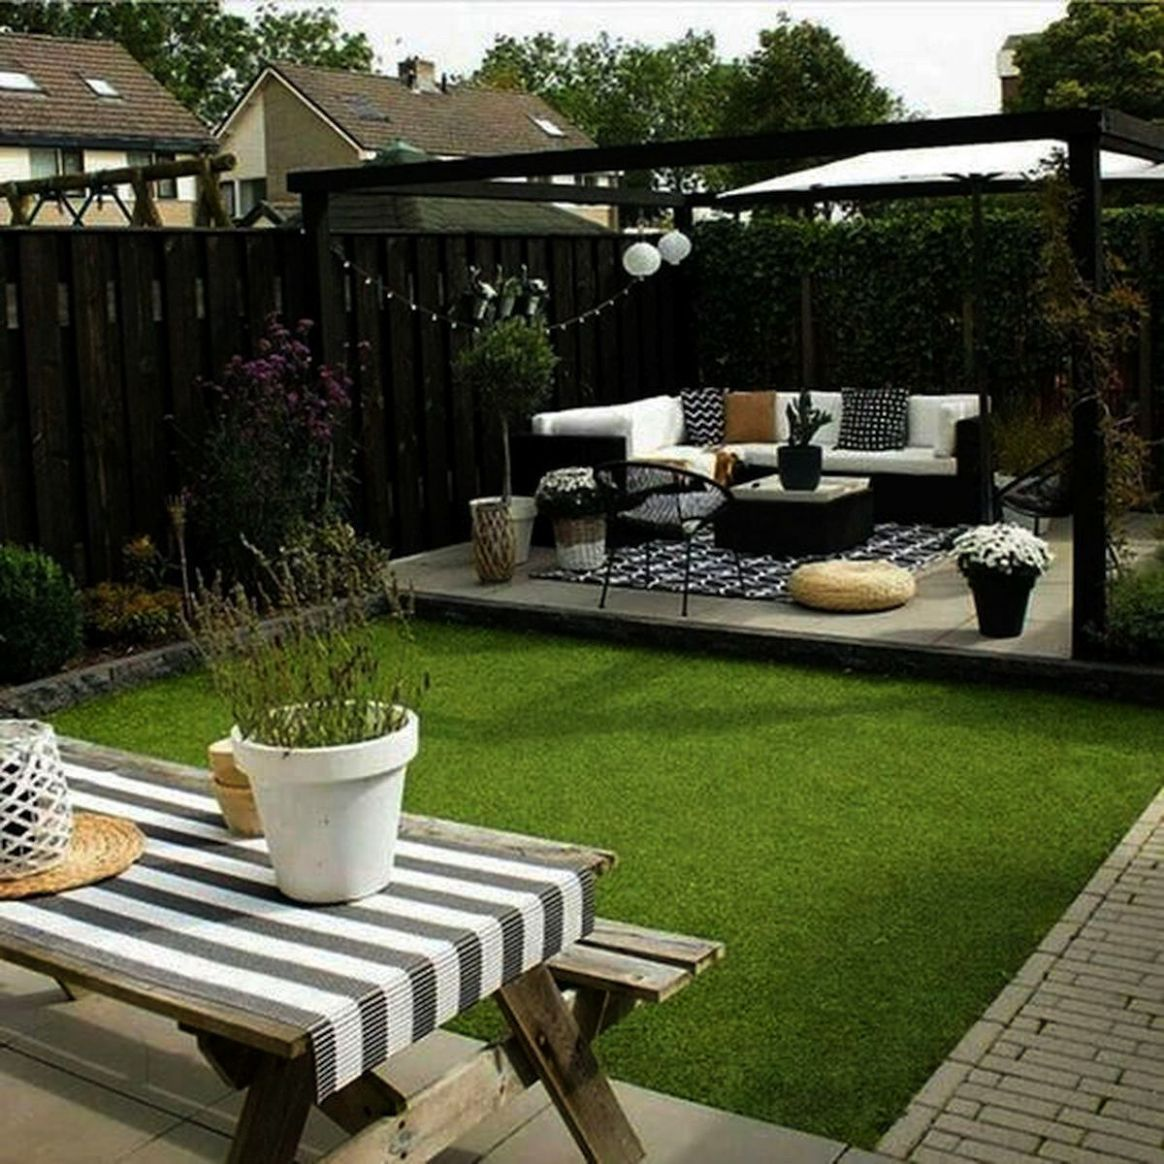 New At Landscaping? Try These Tips (With images) | Patio garden ...